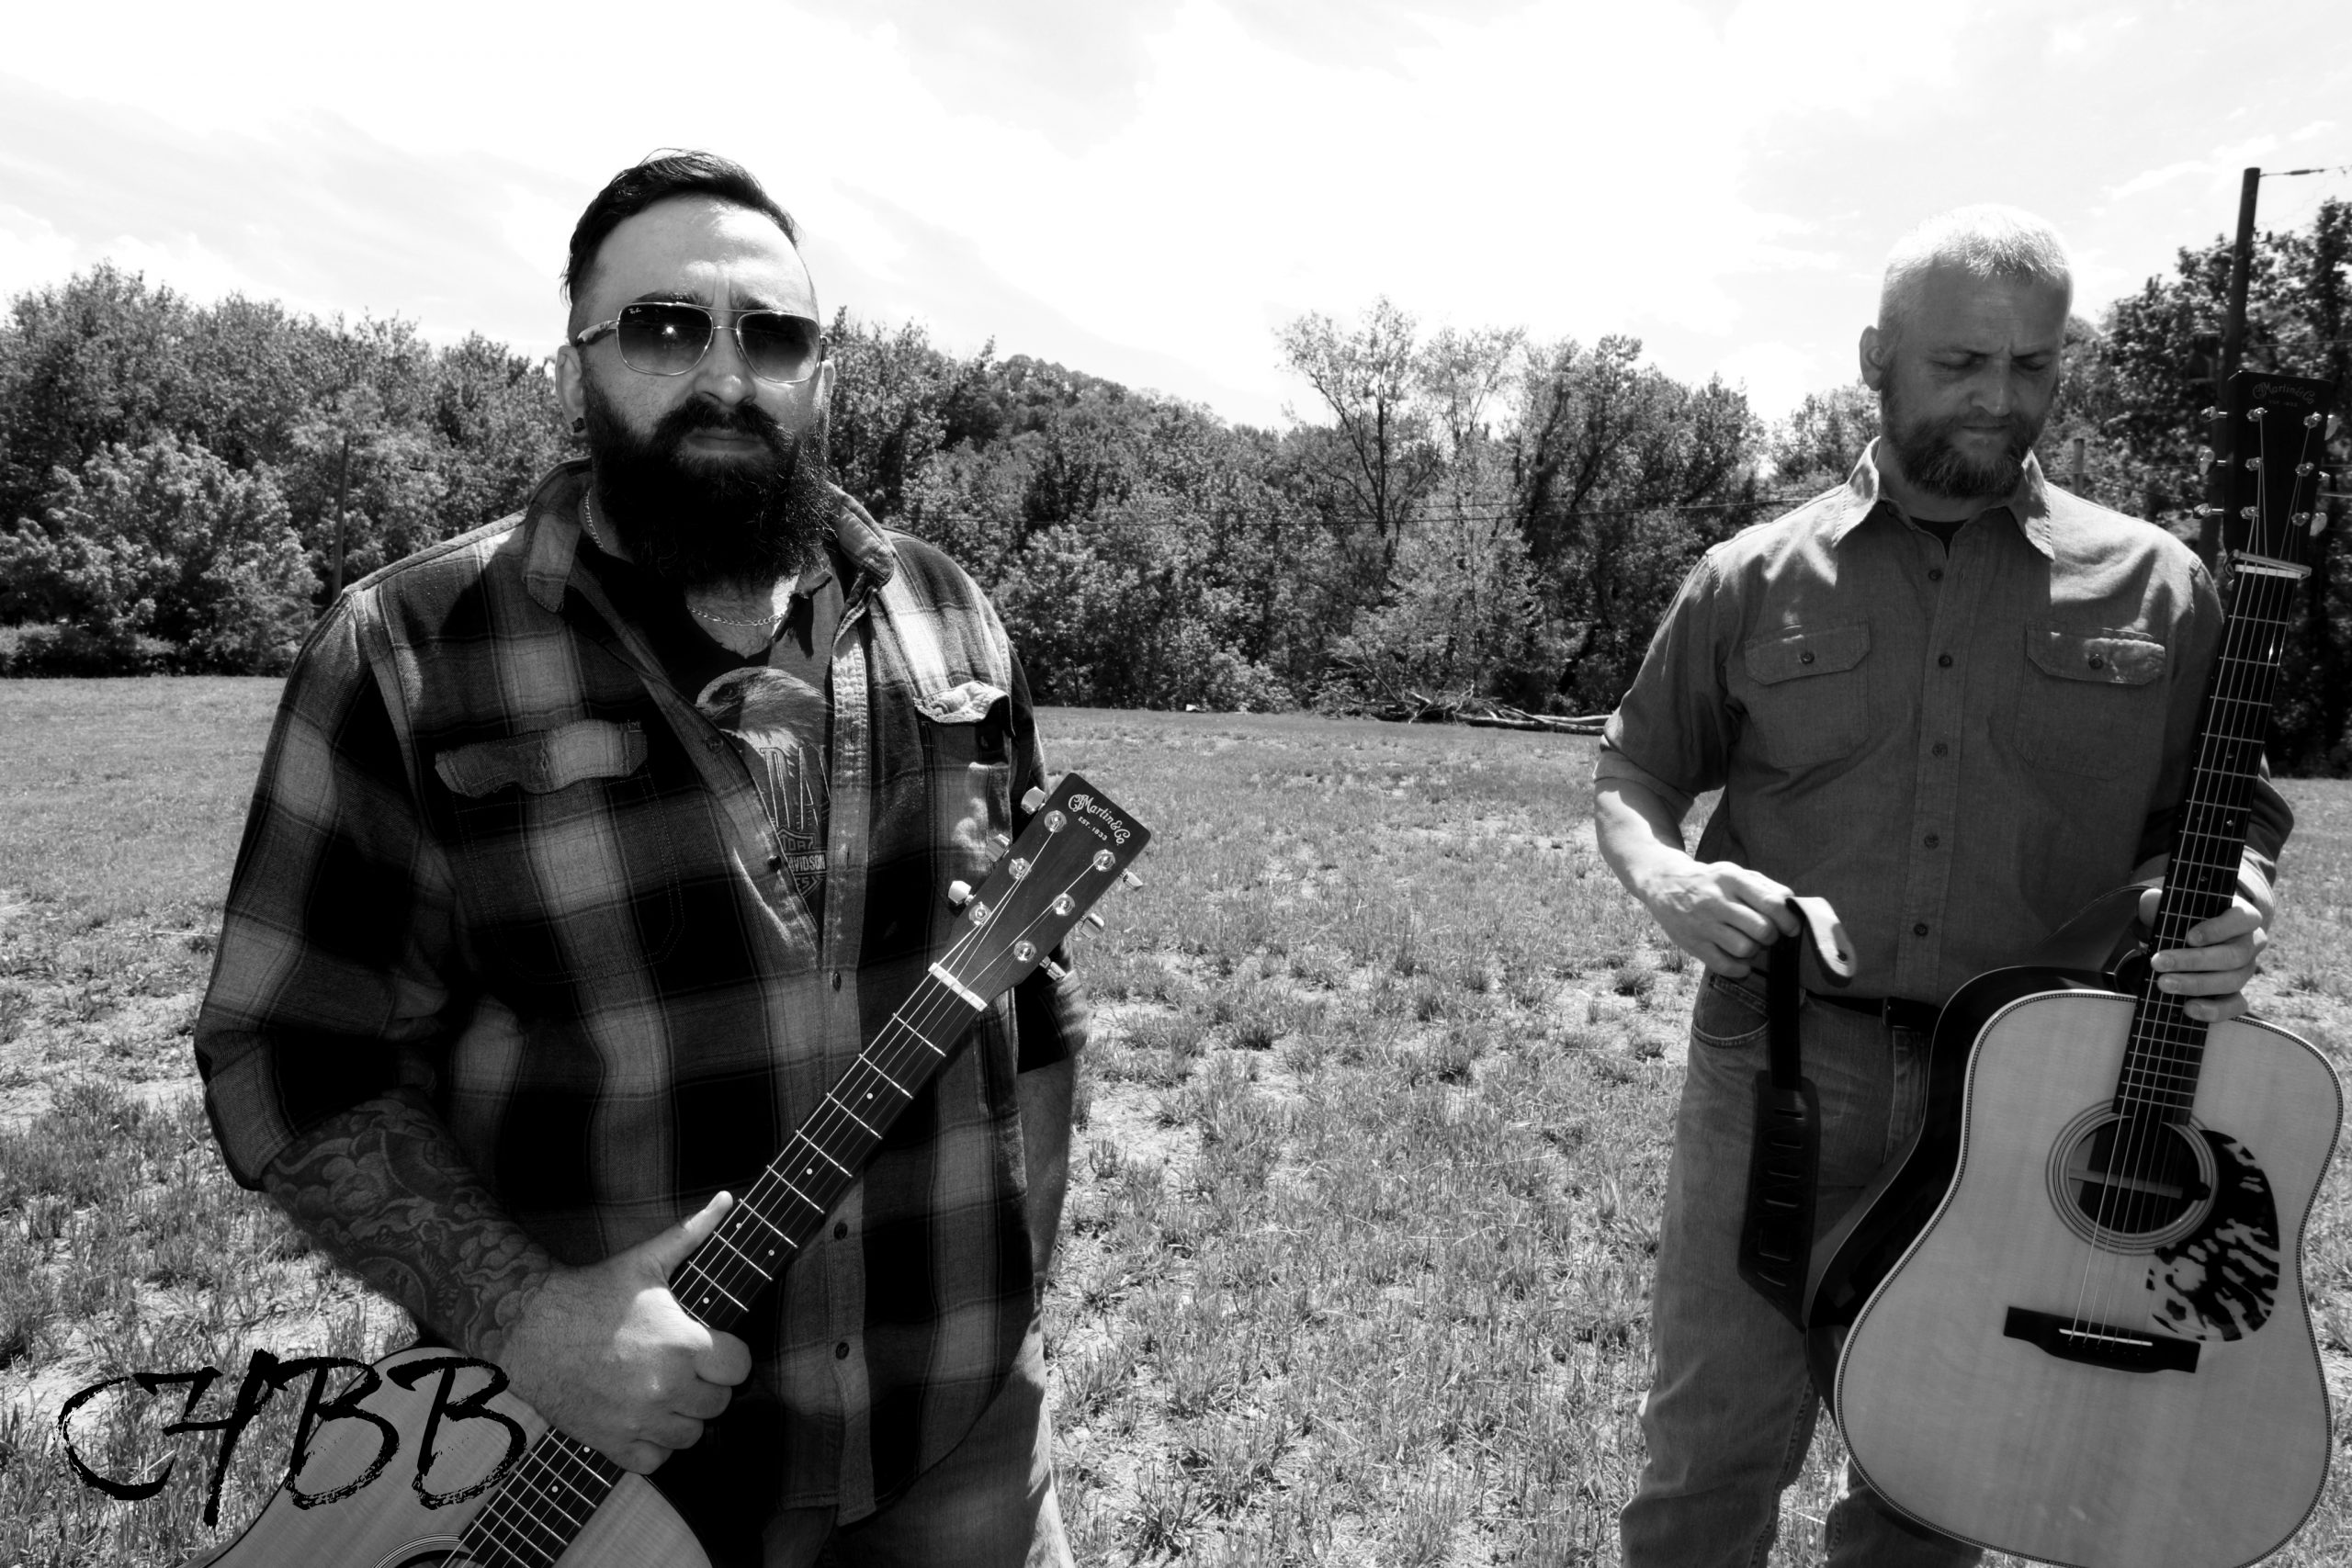 New Video from The Hall Brothers Band